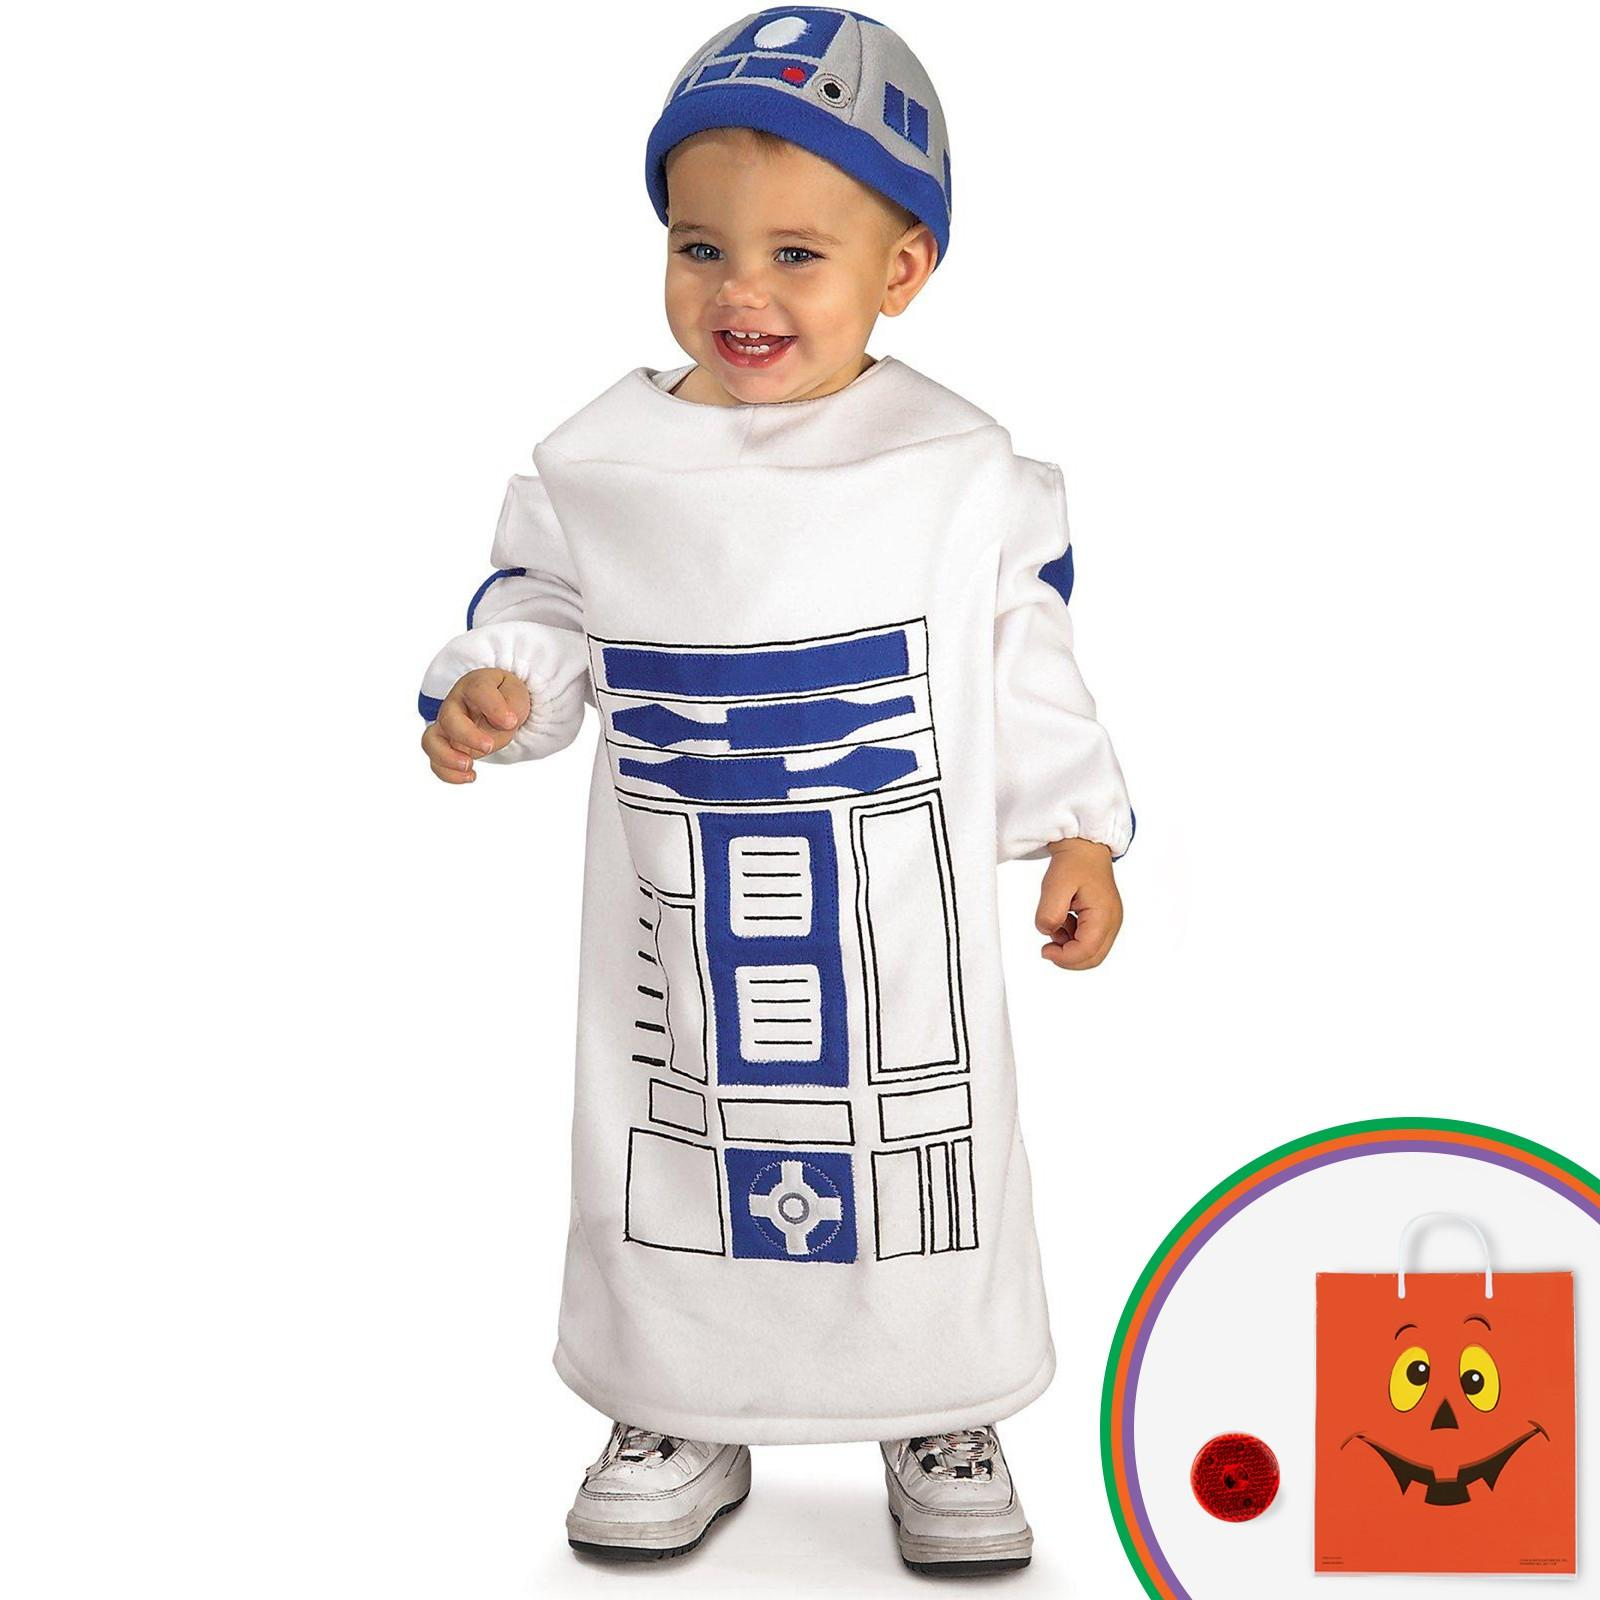 Star Wars R2D2 Toddler Costume Kit with Free Gift